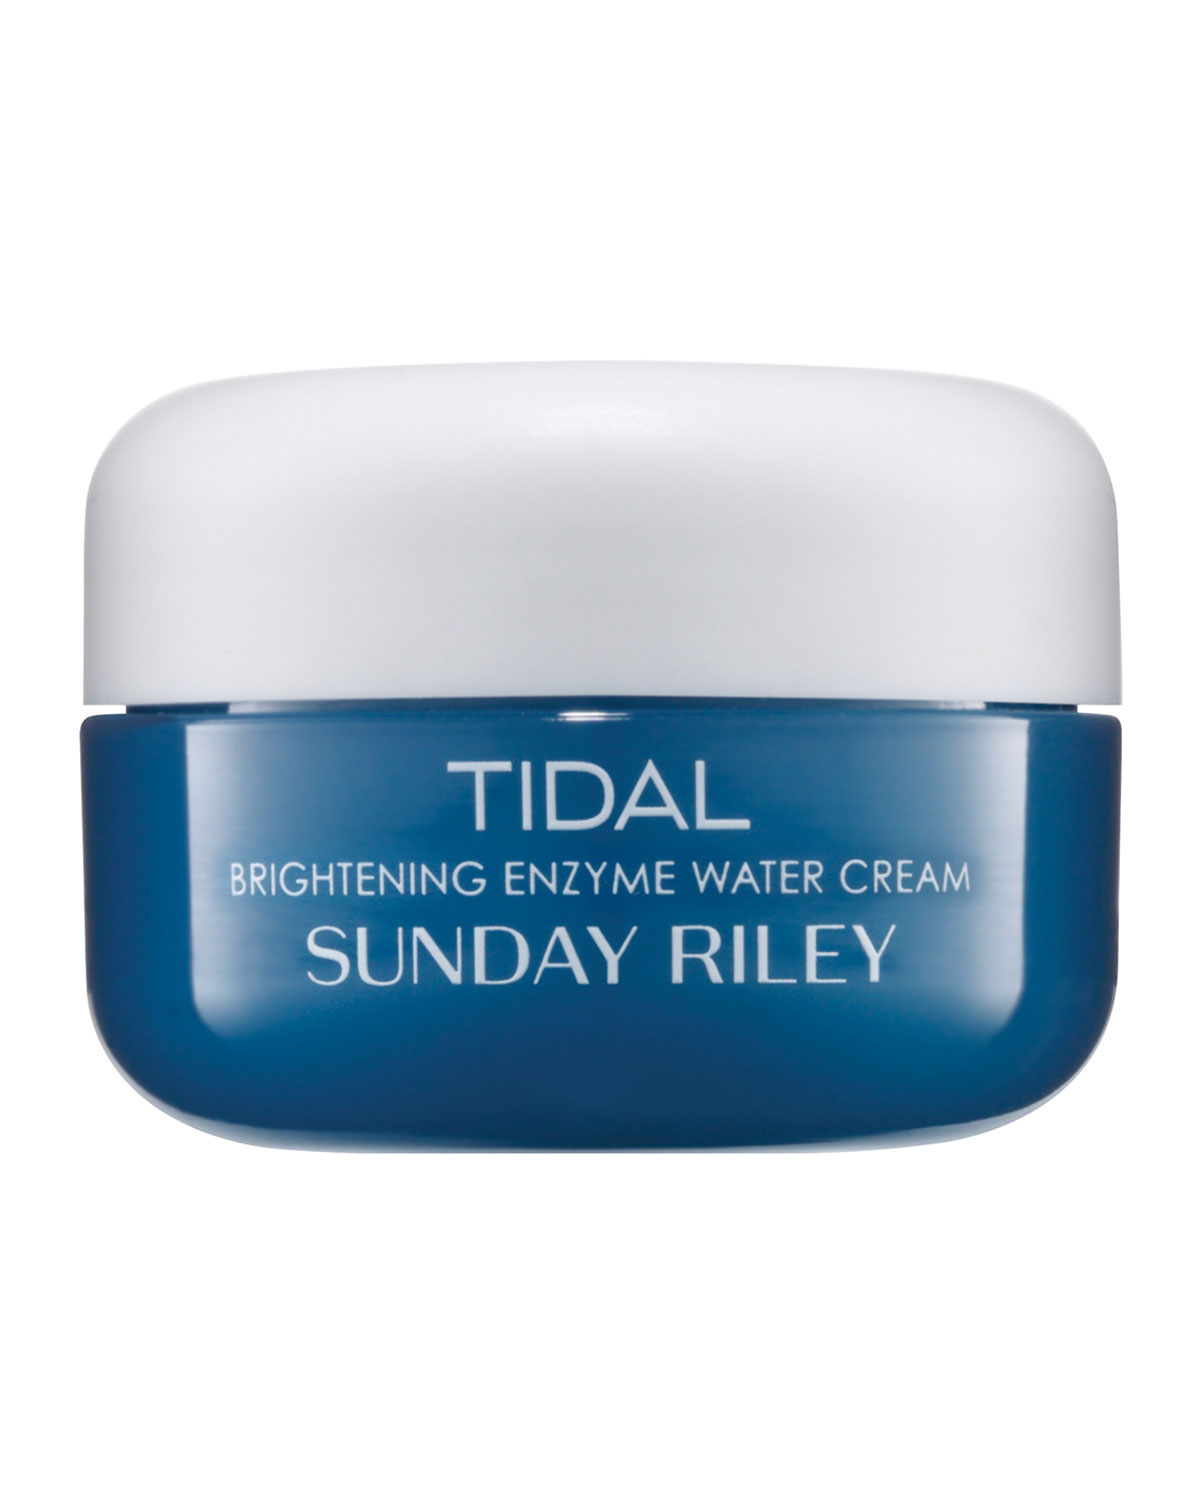 SUNDAY RILEY MODERN SKINCARE Tidal Brightening Enzyme Water Cream, 0.5 Oz./ 15 Ml